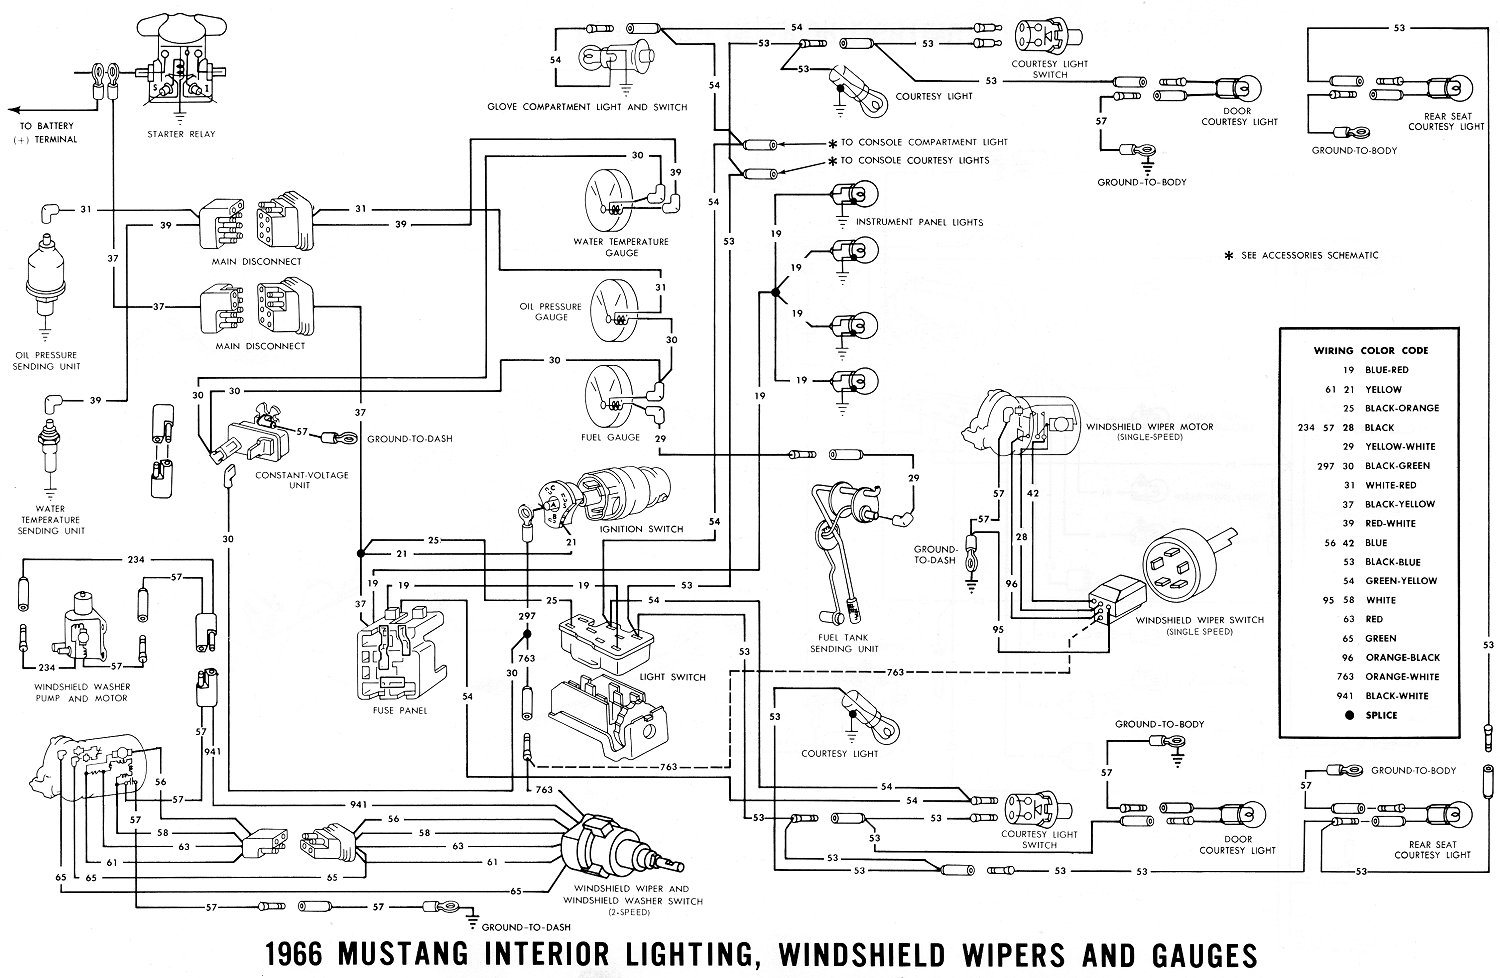 Wiring Diagram For 1971 Mustang likewise Ducane Gas Furnace Parts moreover Chevrolet Aveo Mk1 2002 2011 Fuse Box Diagram also Chevy Silverado Jack Location additionally 2000 Chevy Blazer Cooling System Diagram. on chevy radio wiring